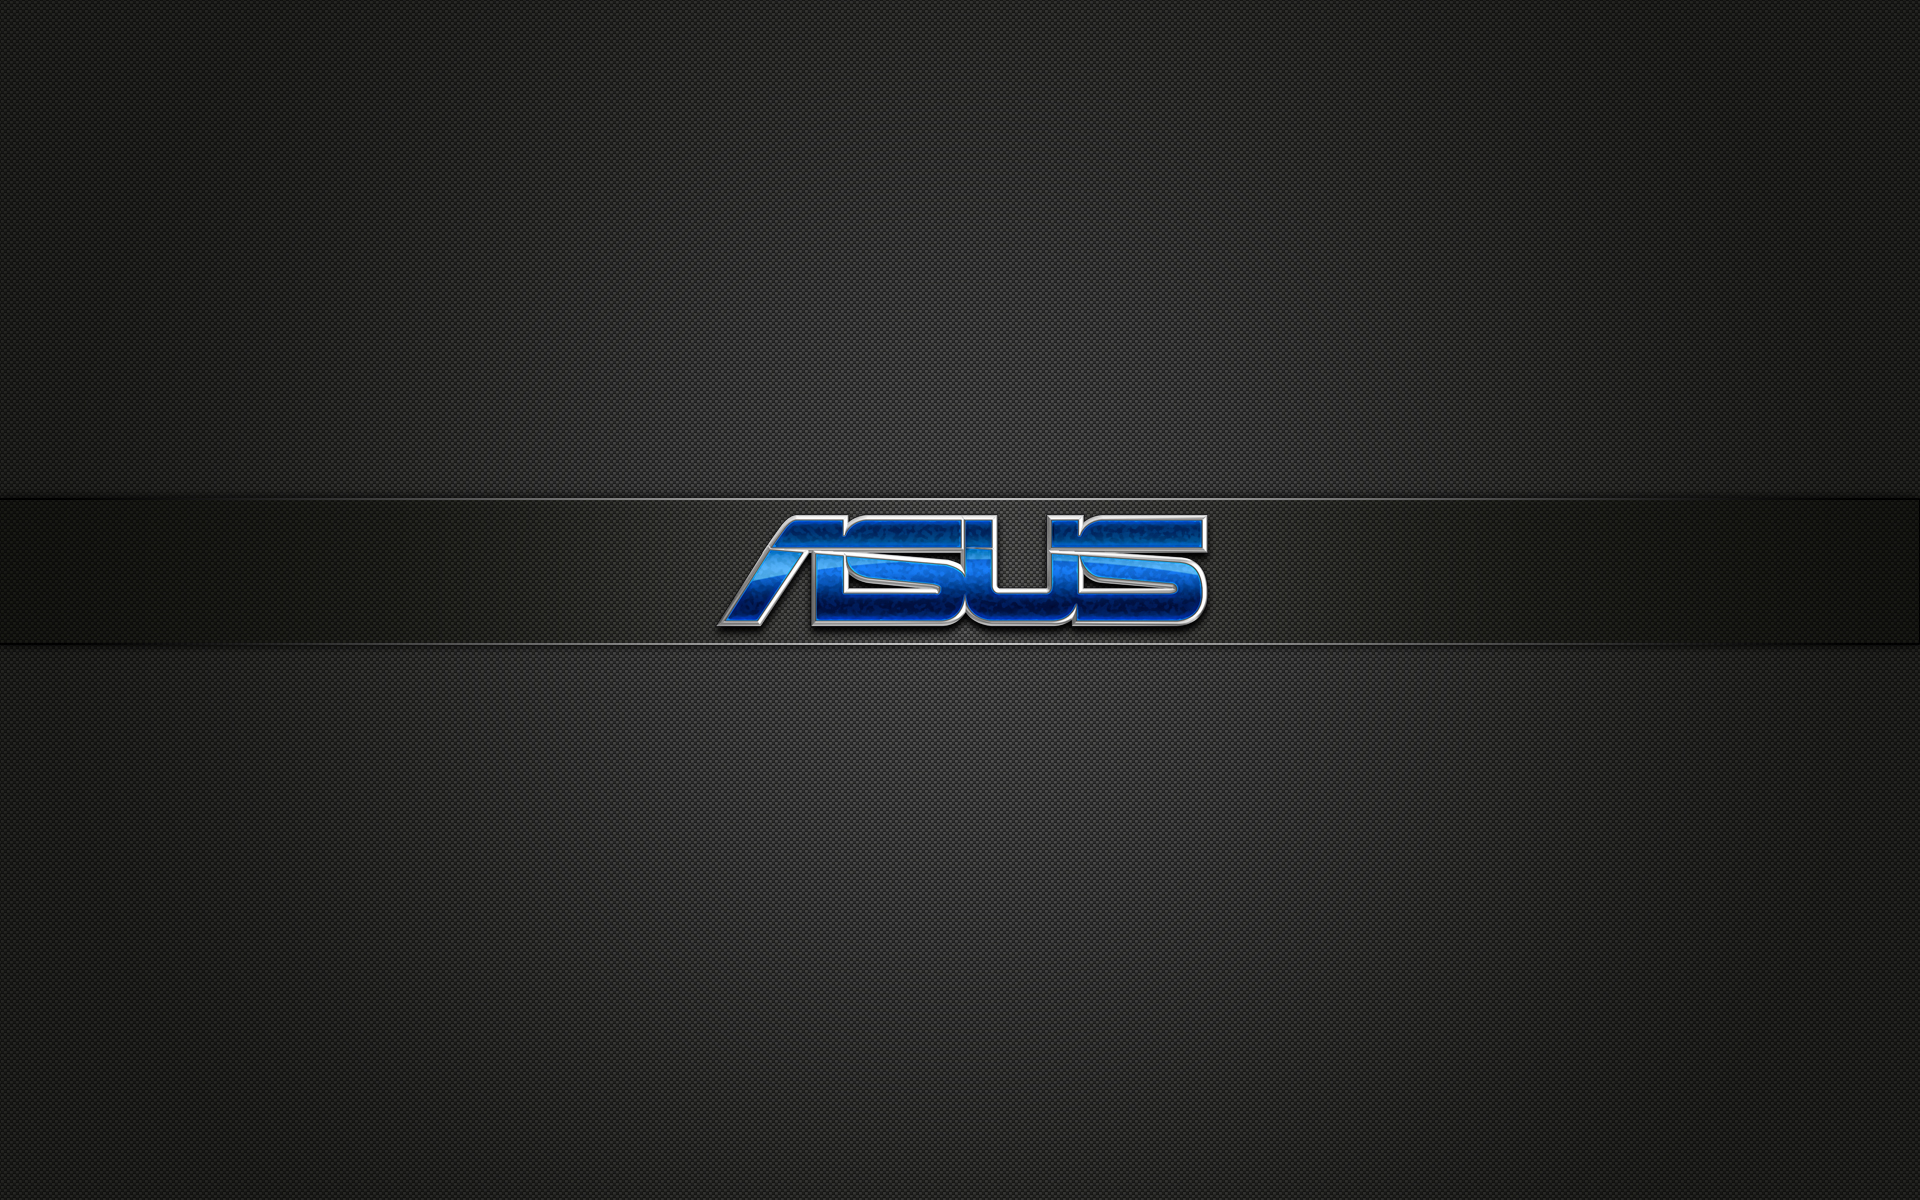 Asus Mobile Wallpaper: Asus HD Wallpapers, Pictures, Images